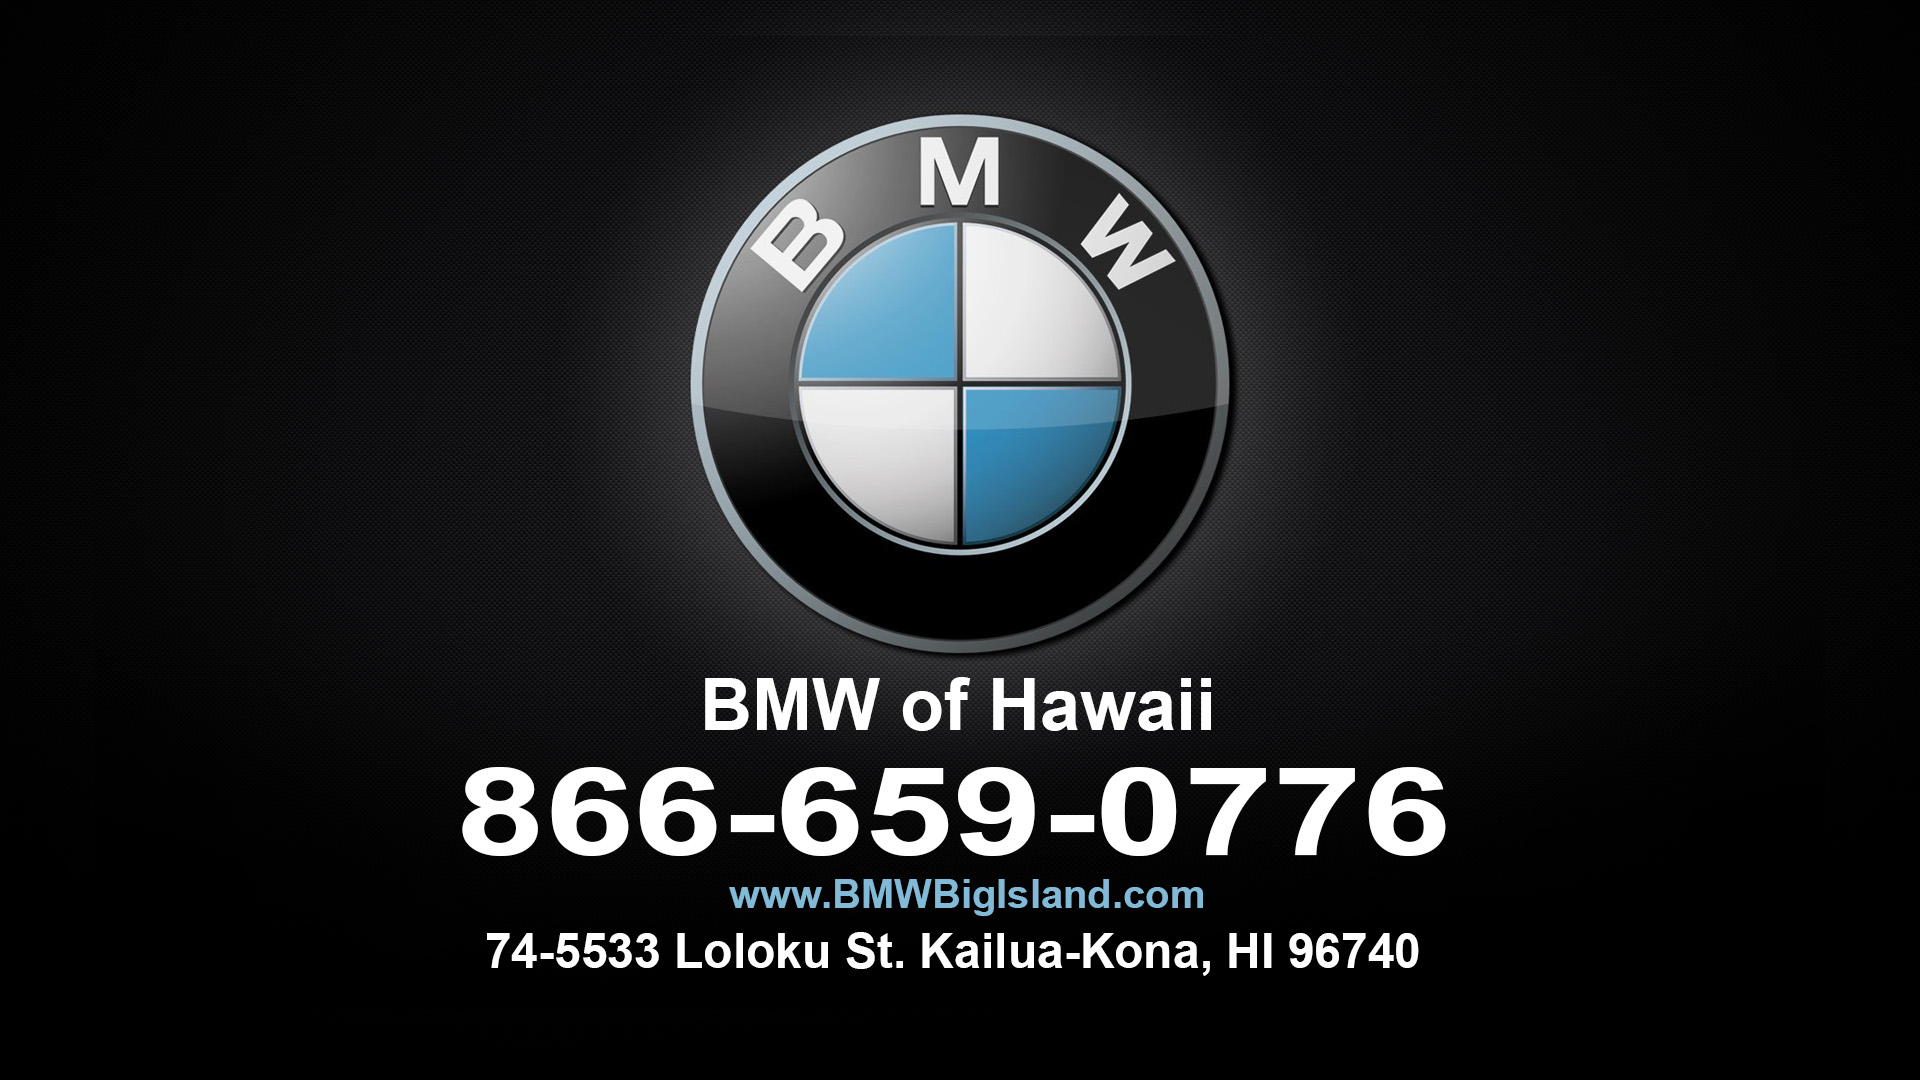 BMW of Hawaii